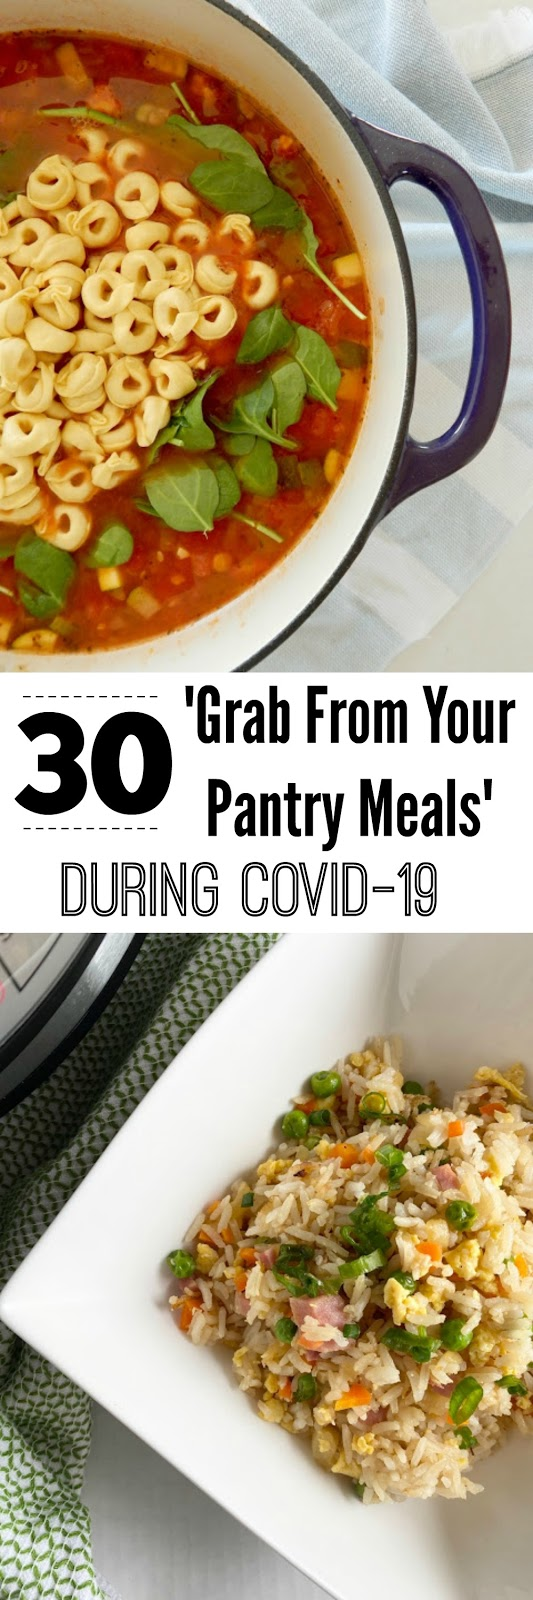 30 grab from your pantry meals #sweetsavoryeats #covid19